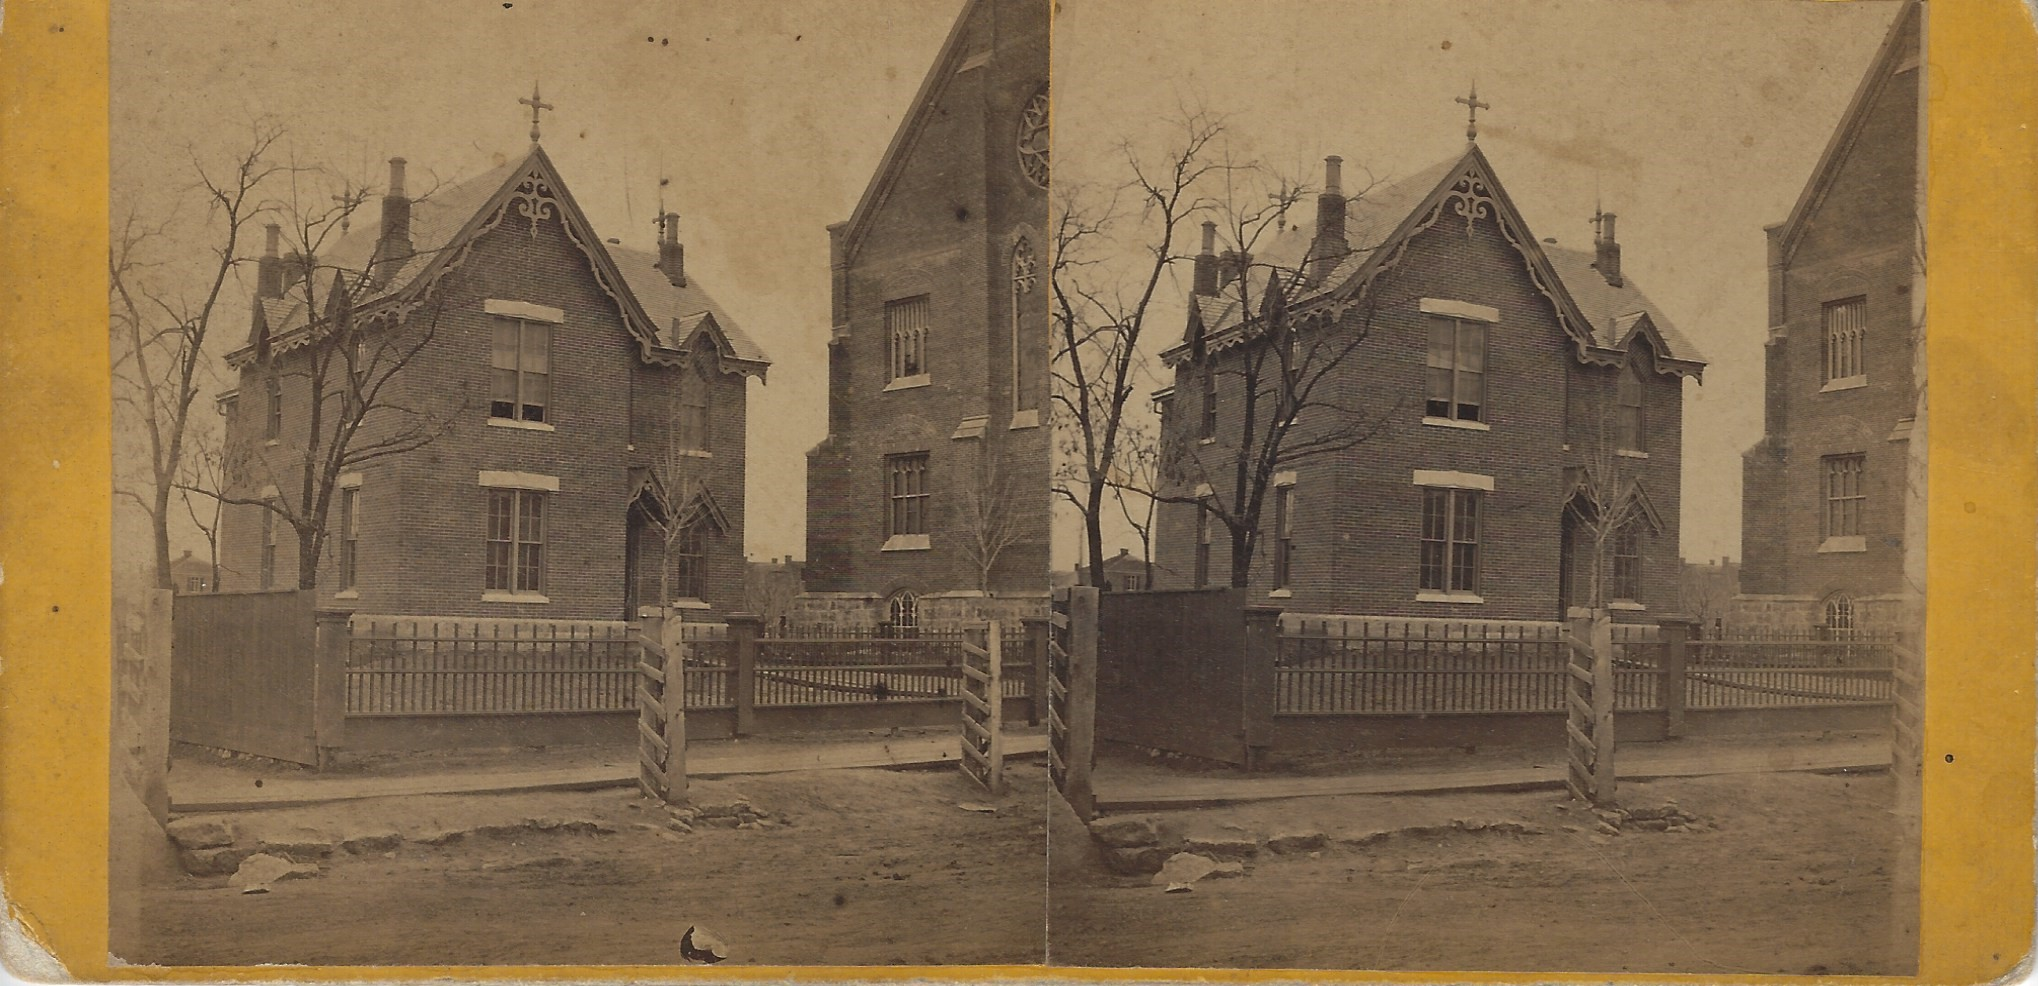 LJTP 100.217 - S. Root SMT - St. Mary's House - c1868